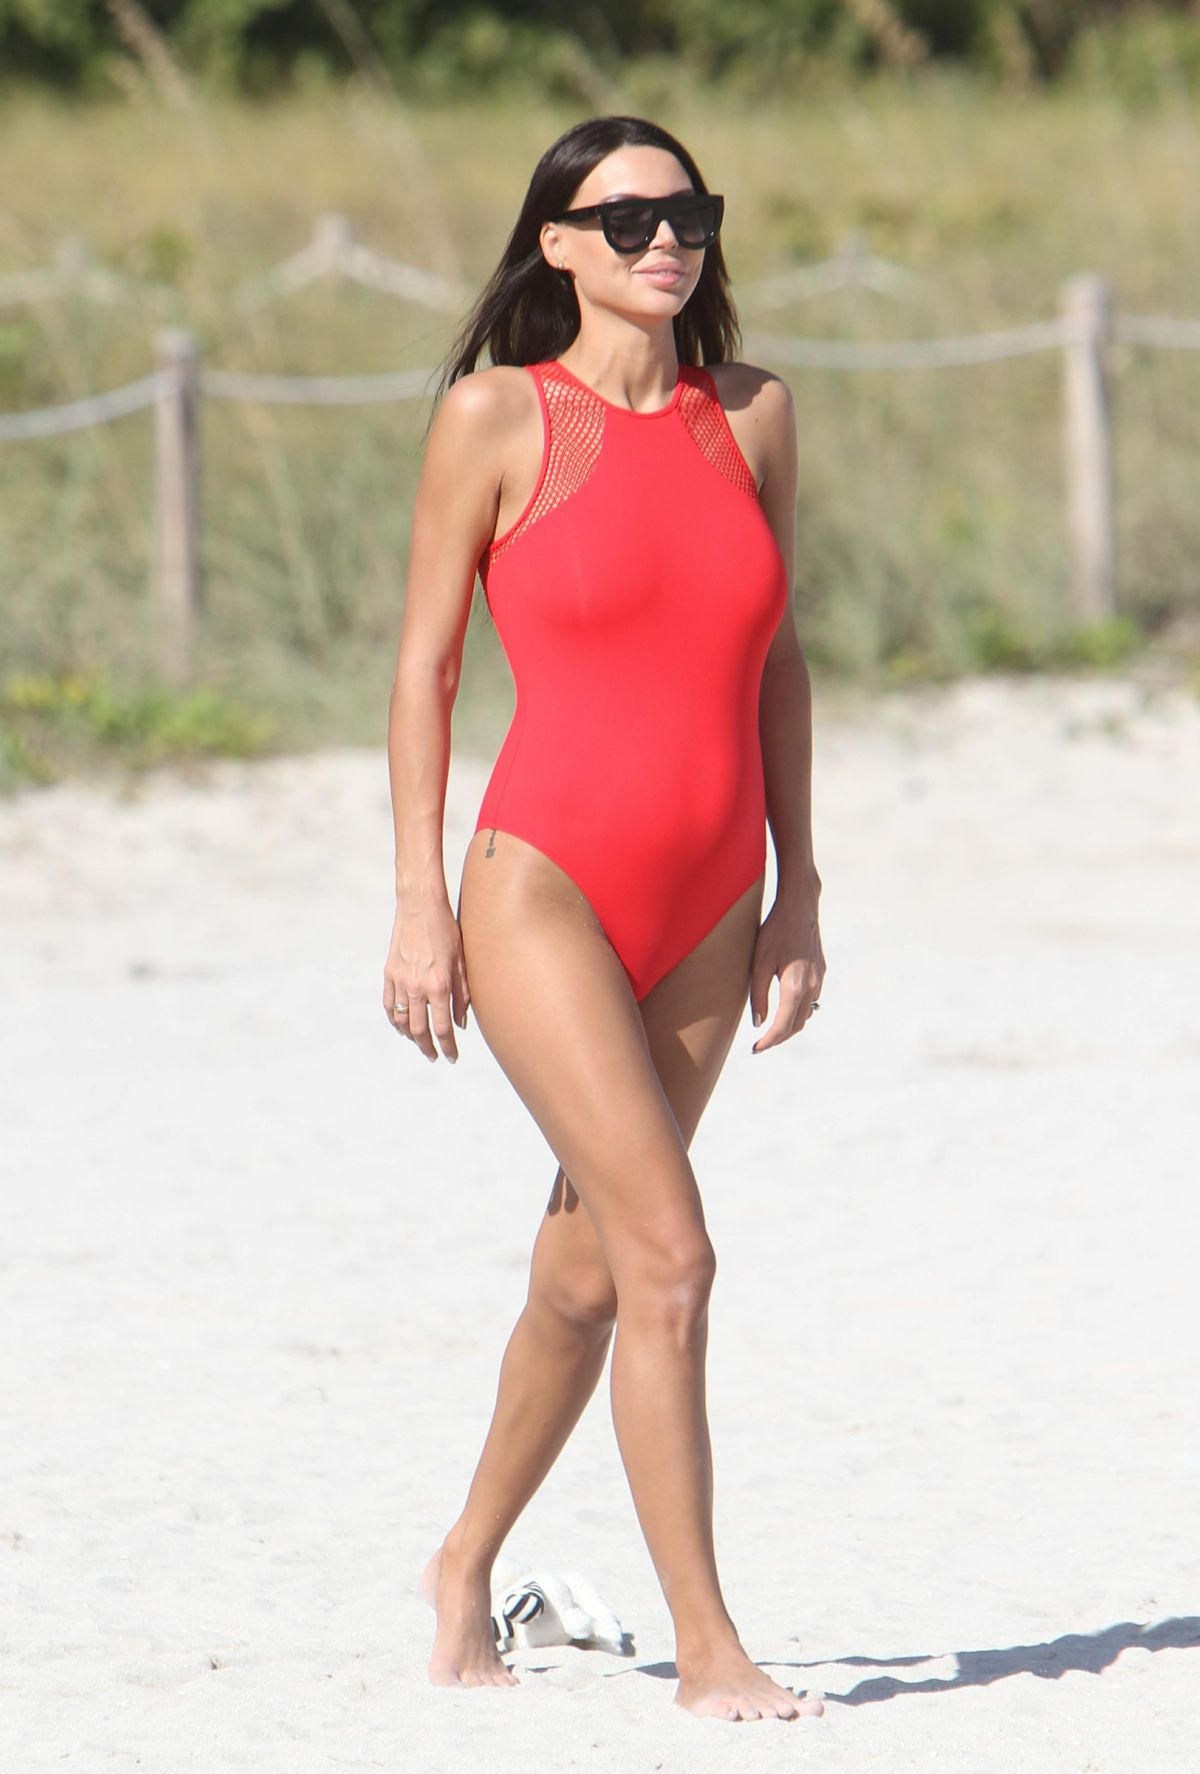 Pregnant OXANA SAMOYLOVA in Swimsuit at a Beach in Miami 01/05/2017